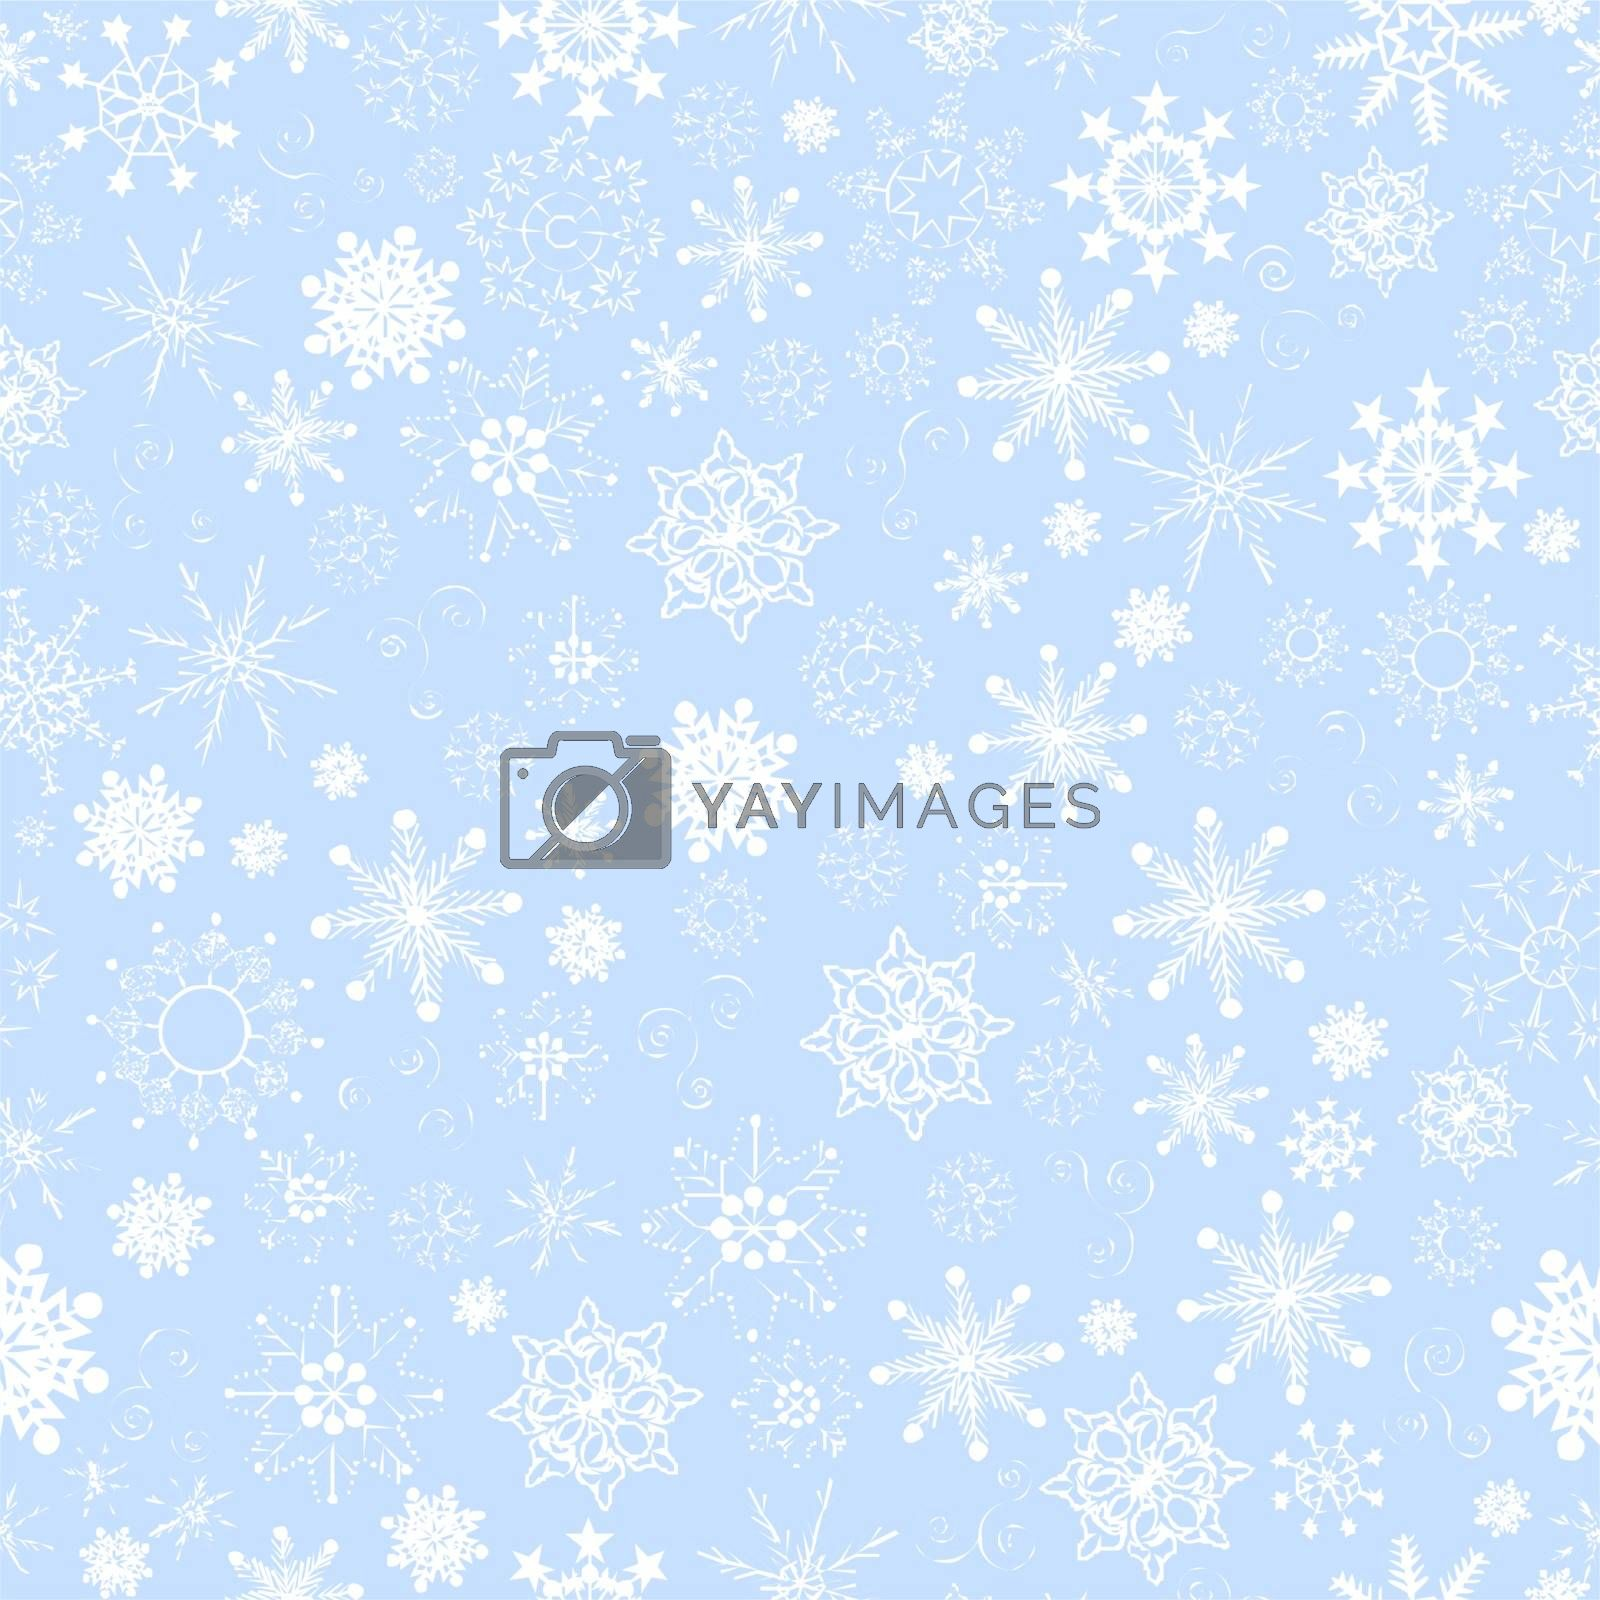 Illustration of seamless snowflakes background.